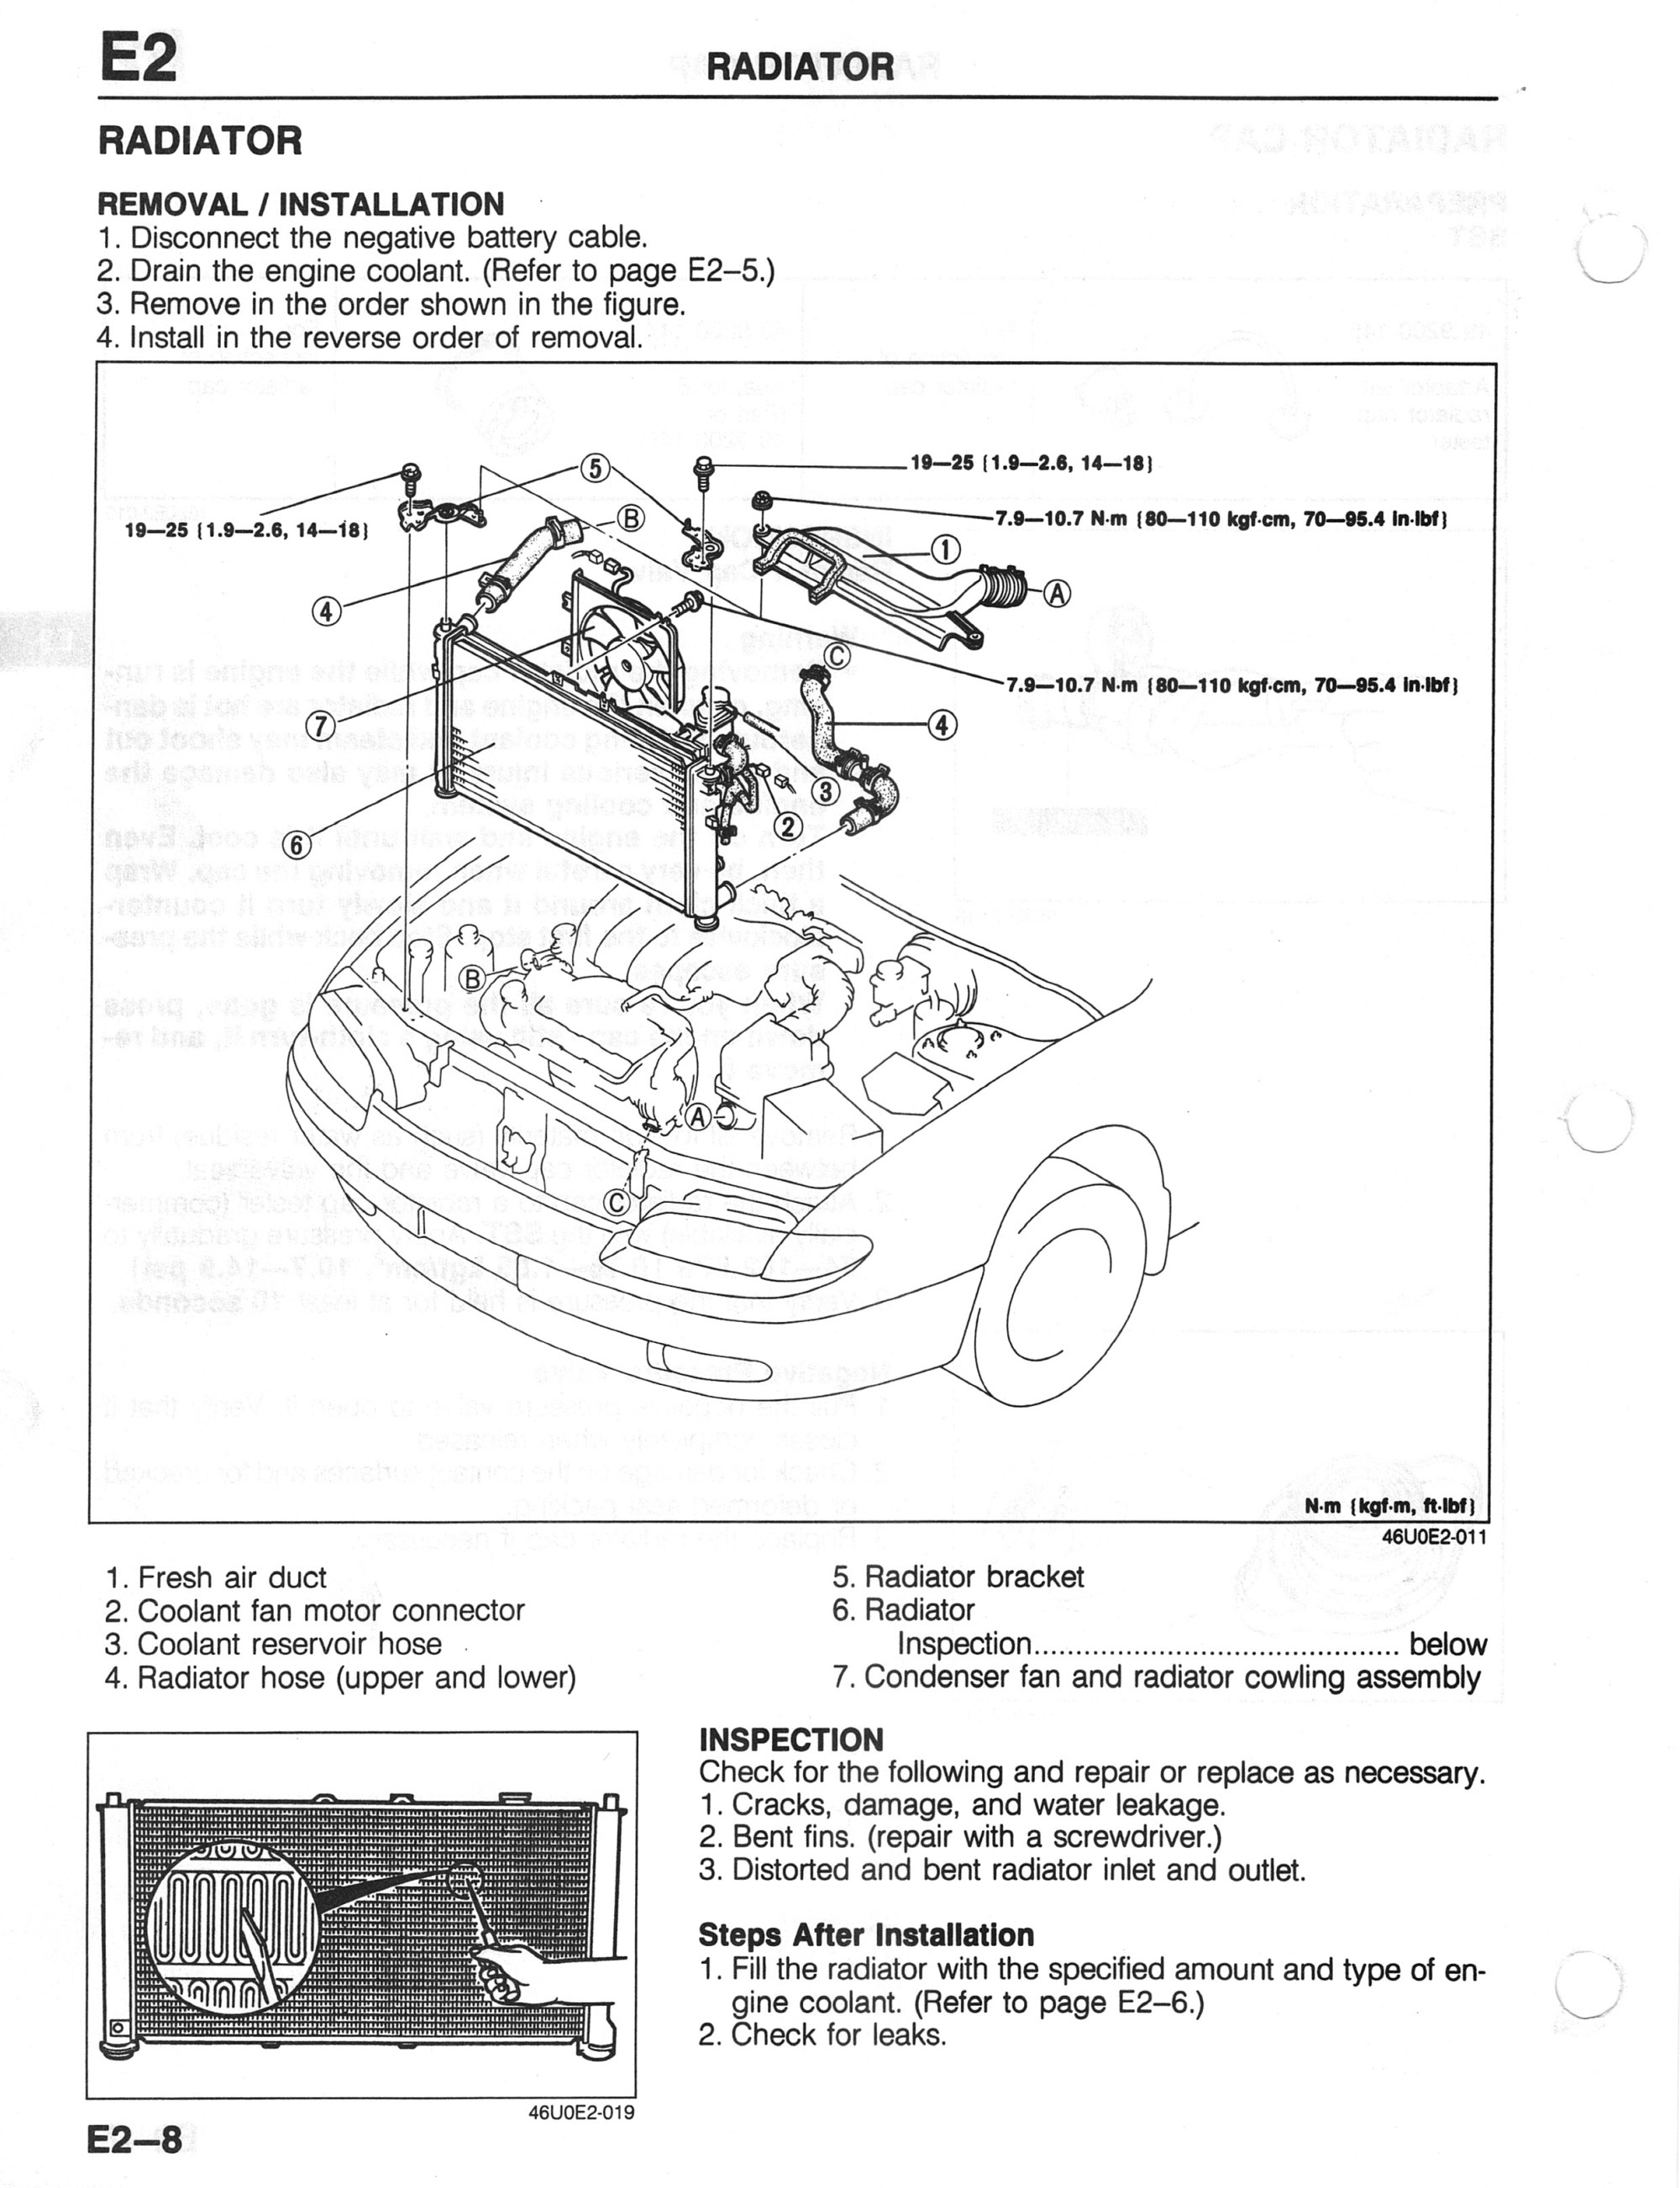 hight resolution of 2000 mazda 626 4 cylinder coolant system diagram images gallery